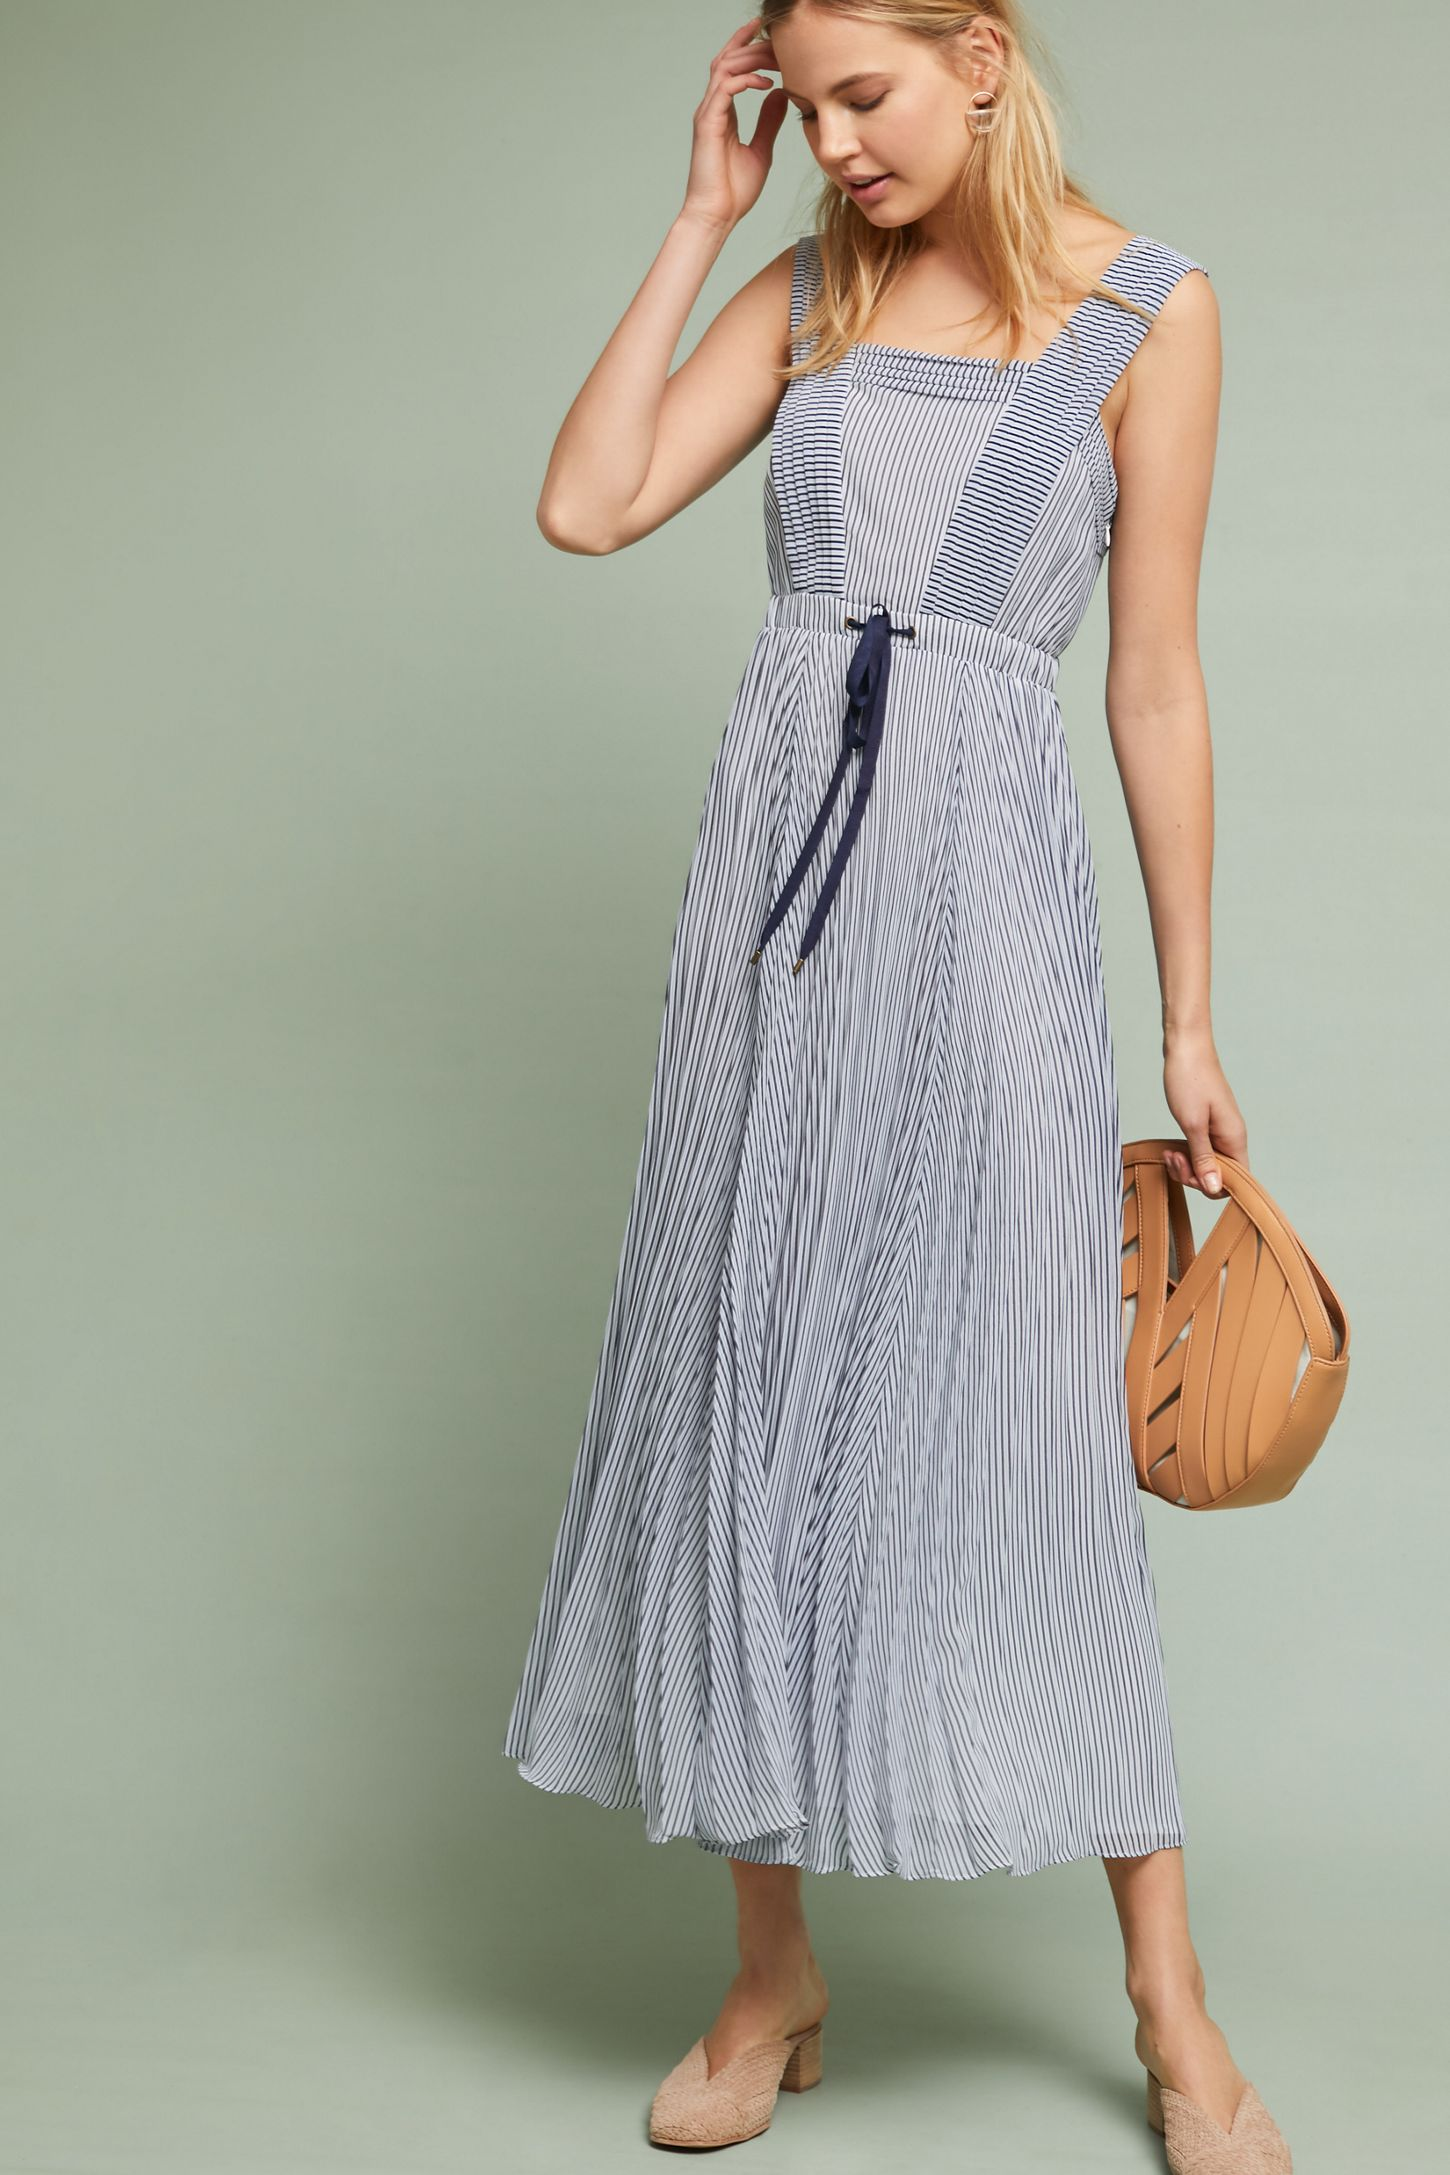 08884c41b9b11 Darcy Striped Dress | Anthropologie